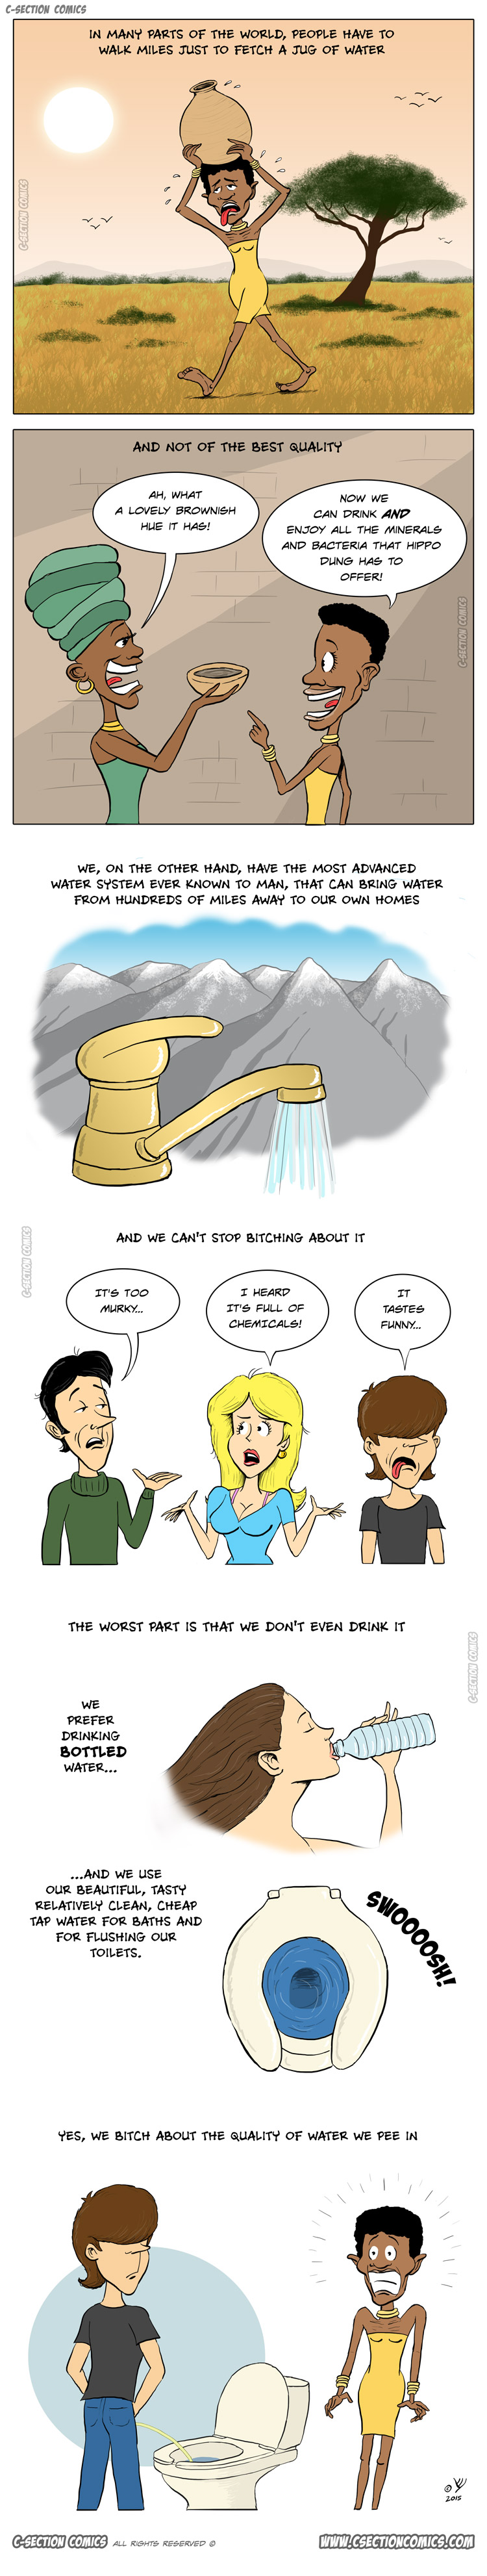 comic-2015-01-30-our-water-70p.jpg